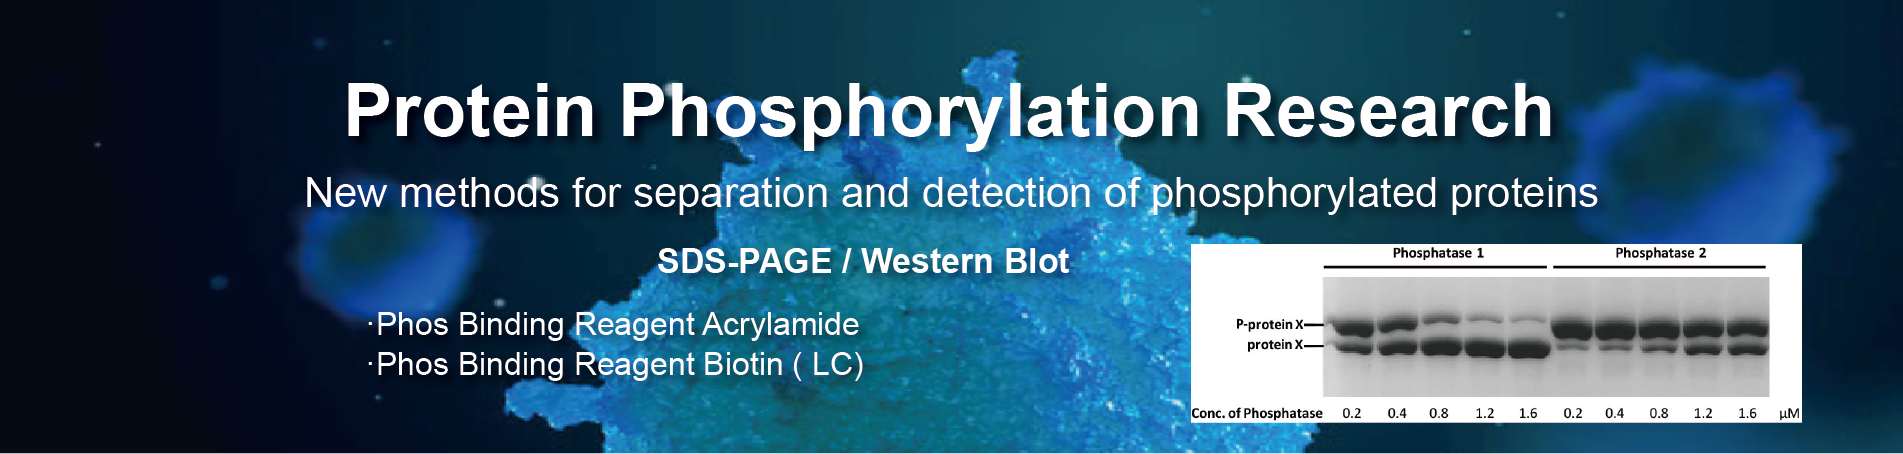 protein phosphorylation research